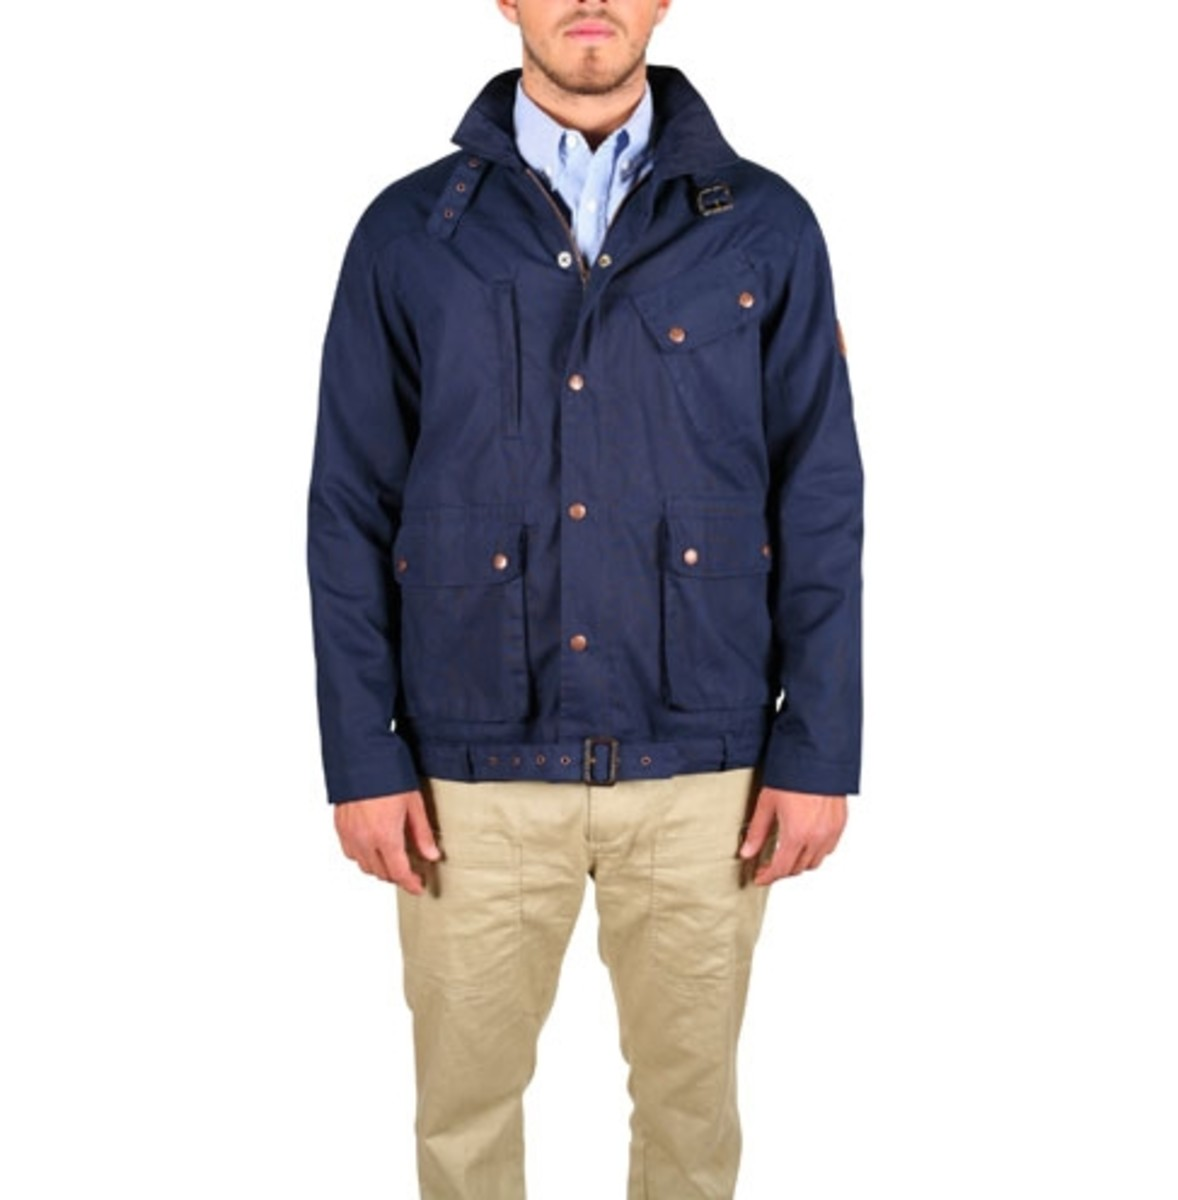 Penfield SS2011 Jackets 16